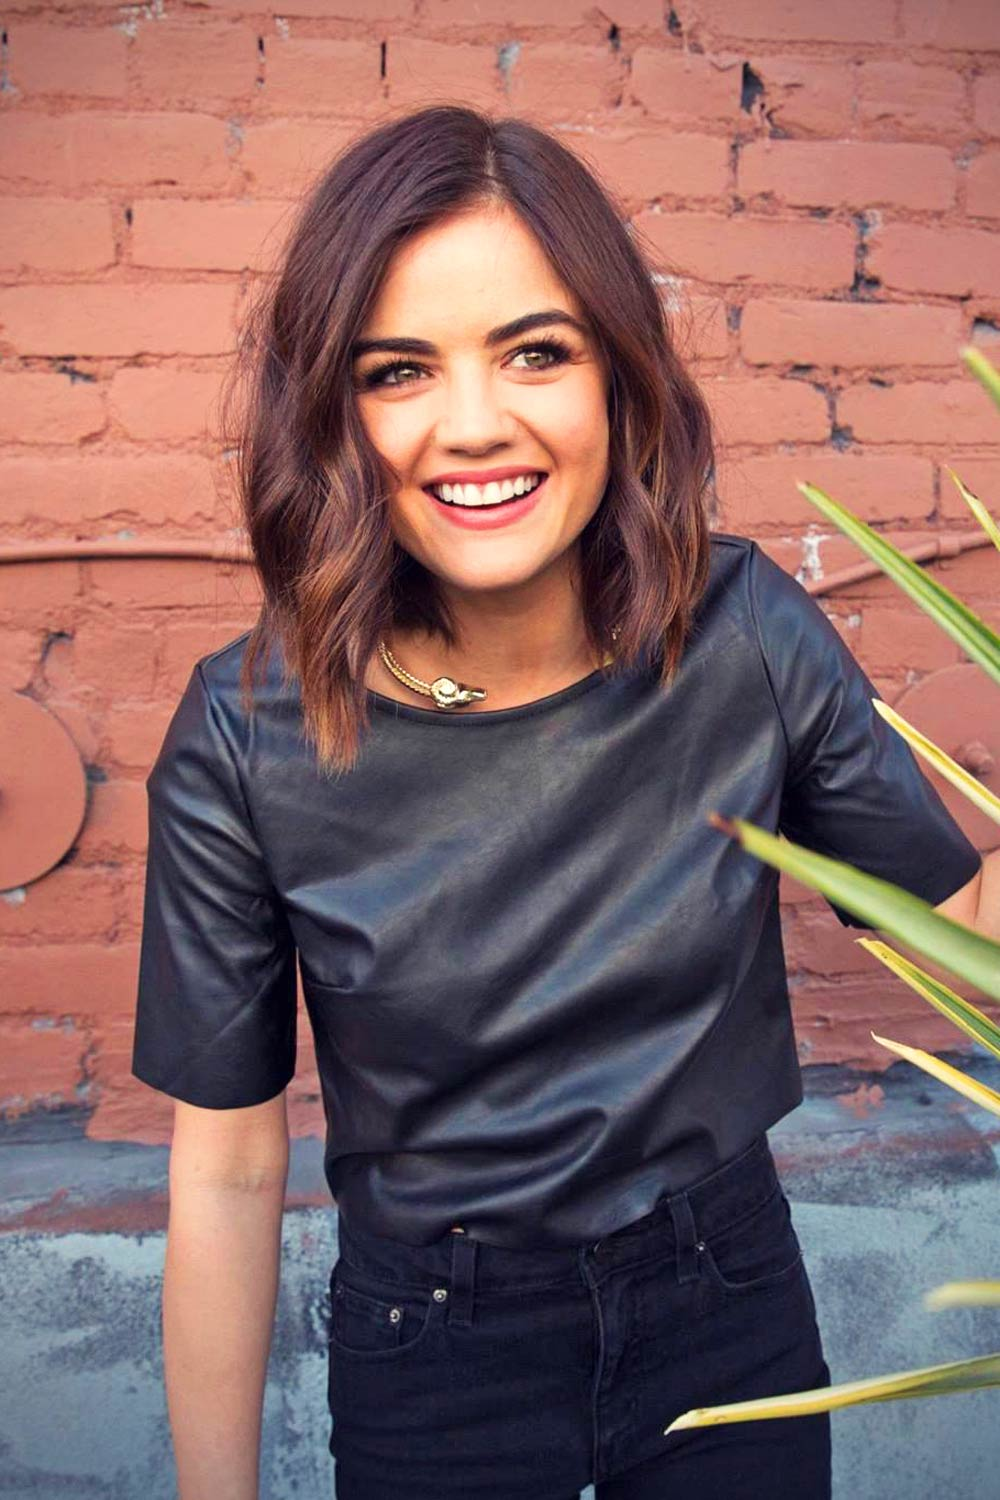 Lucy Hale - 2015 Become With Us Promotional portraits